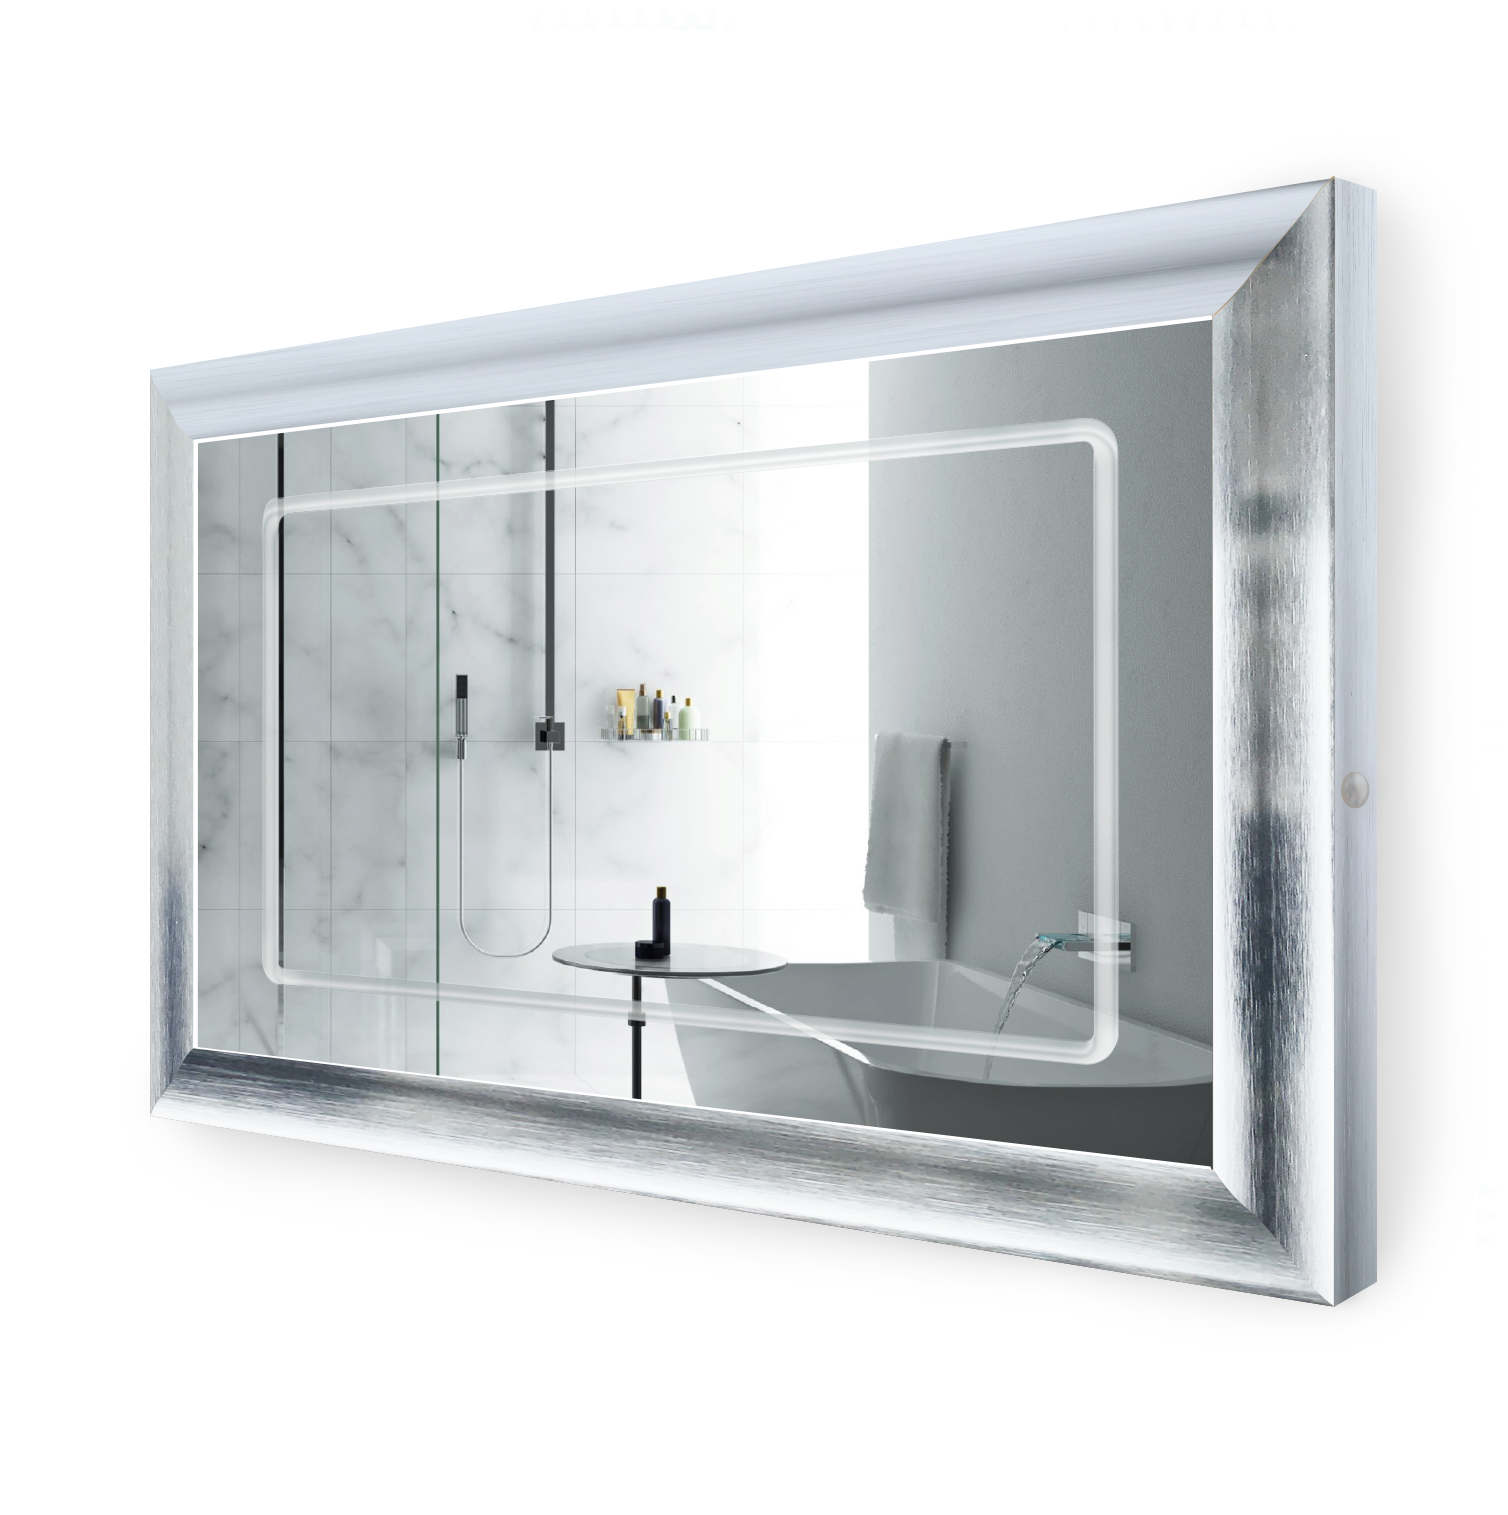 Led Lighted 48 Inch X 30 Inch Bathroom Silver Frame Mirror With Defogger Krugg Reflections Usa